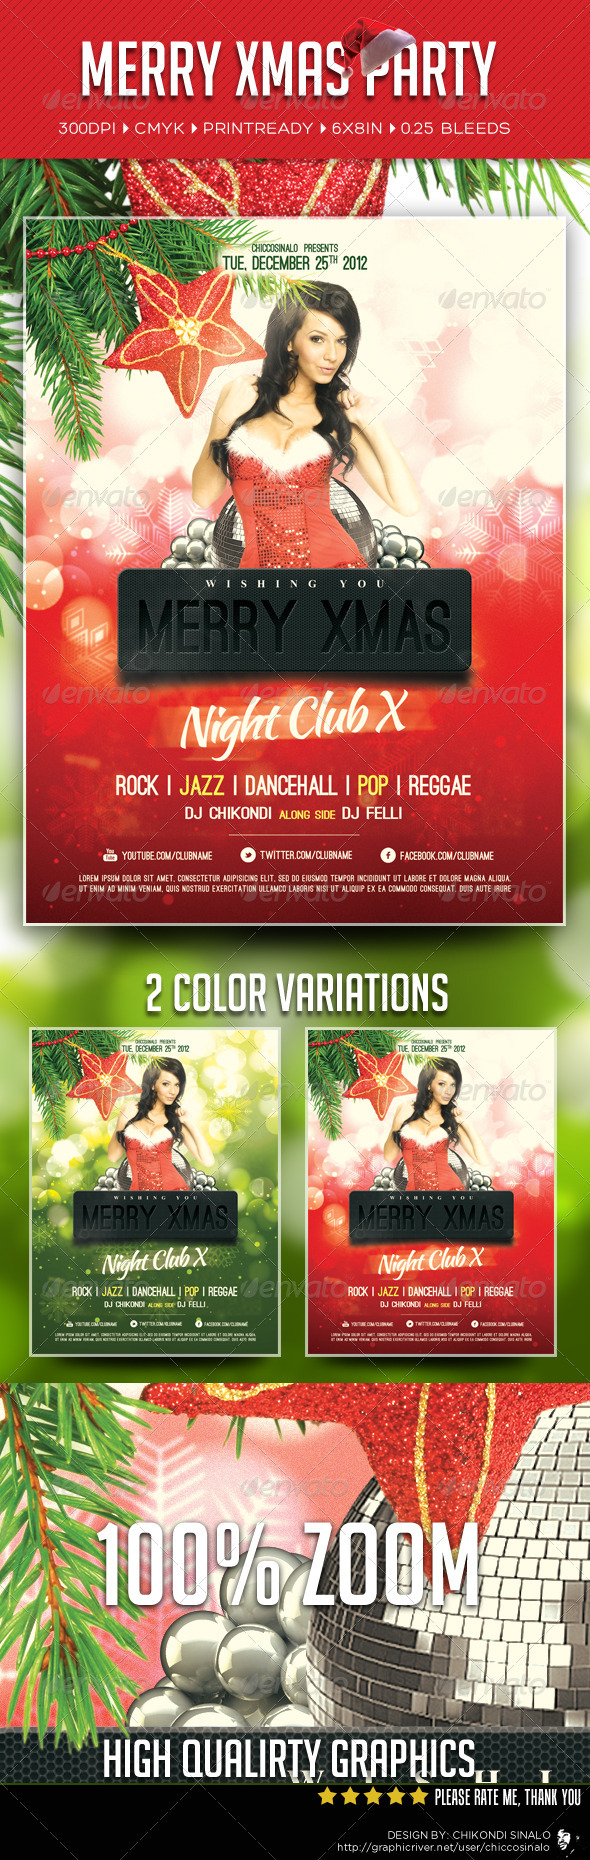 Merry Xmas Party Flyer Template Is Great Flyer Design For Christmas …